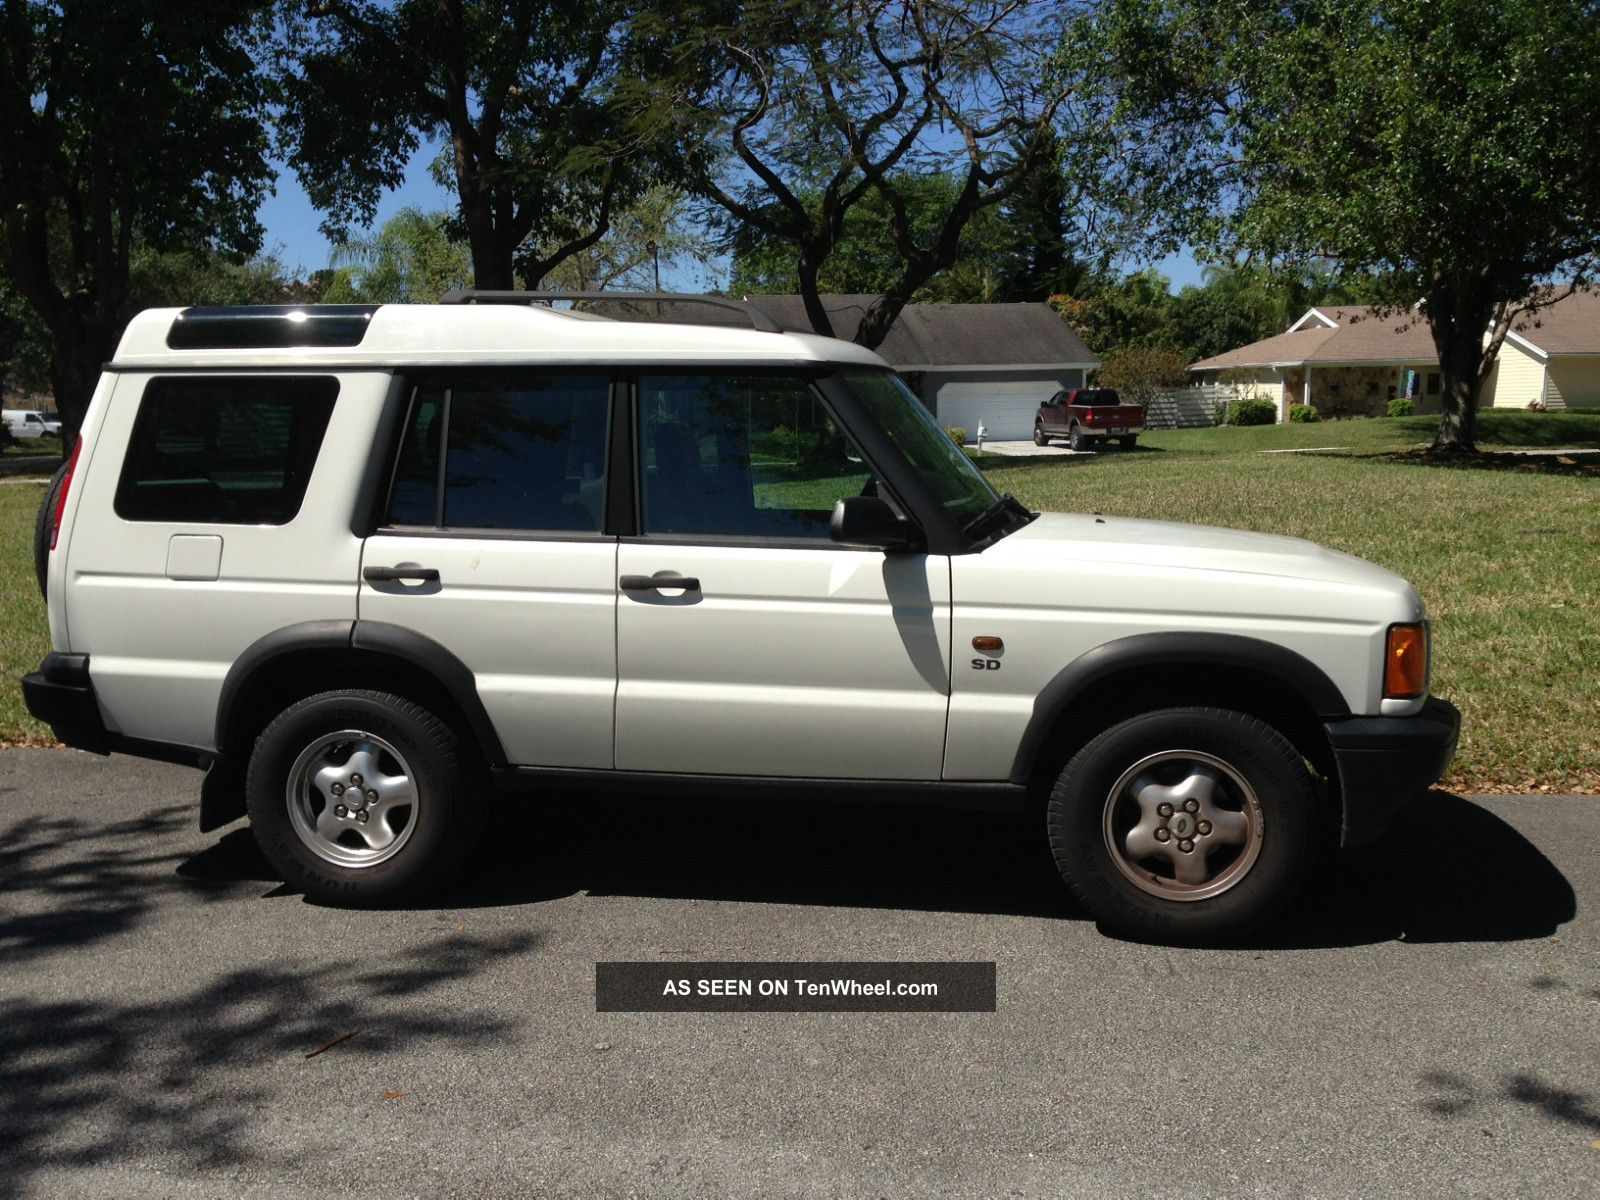 2001 Land Rover Discovery Series II Information and photos